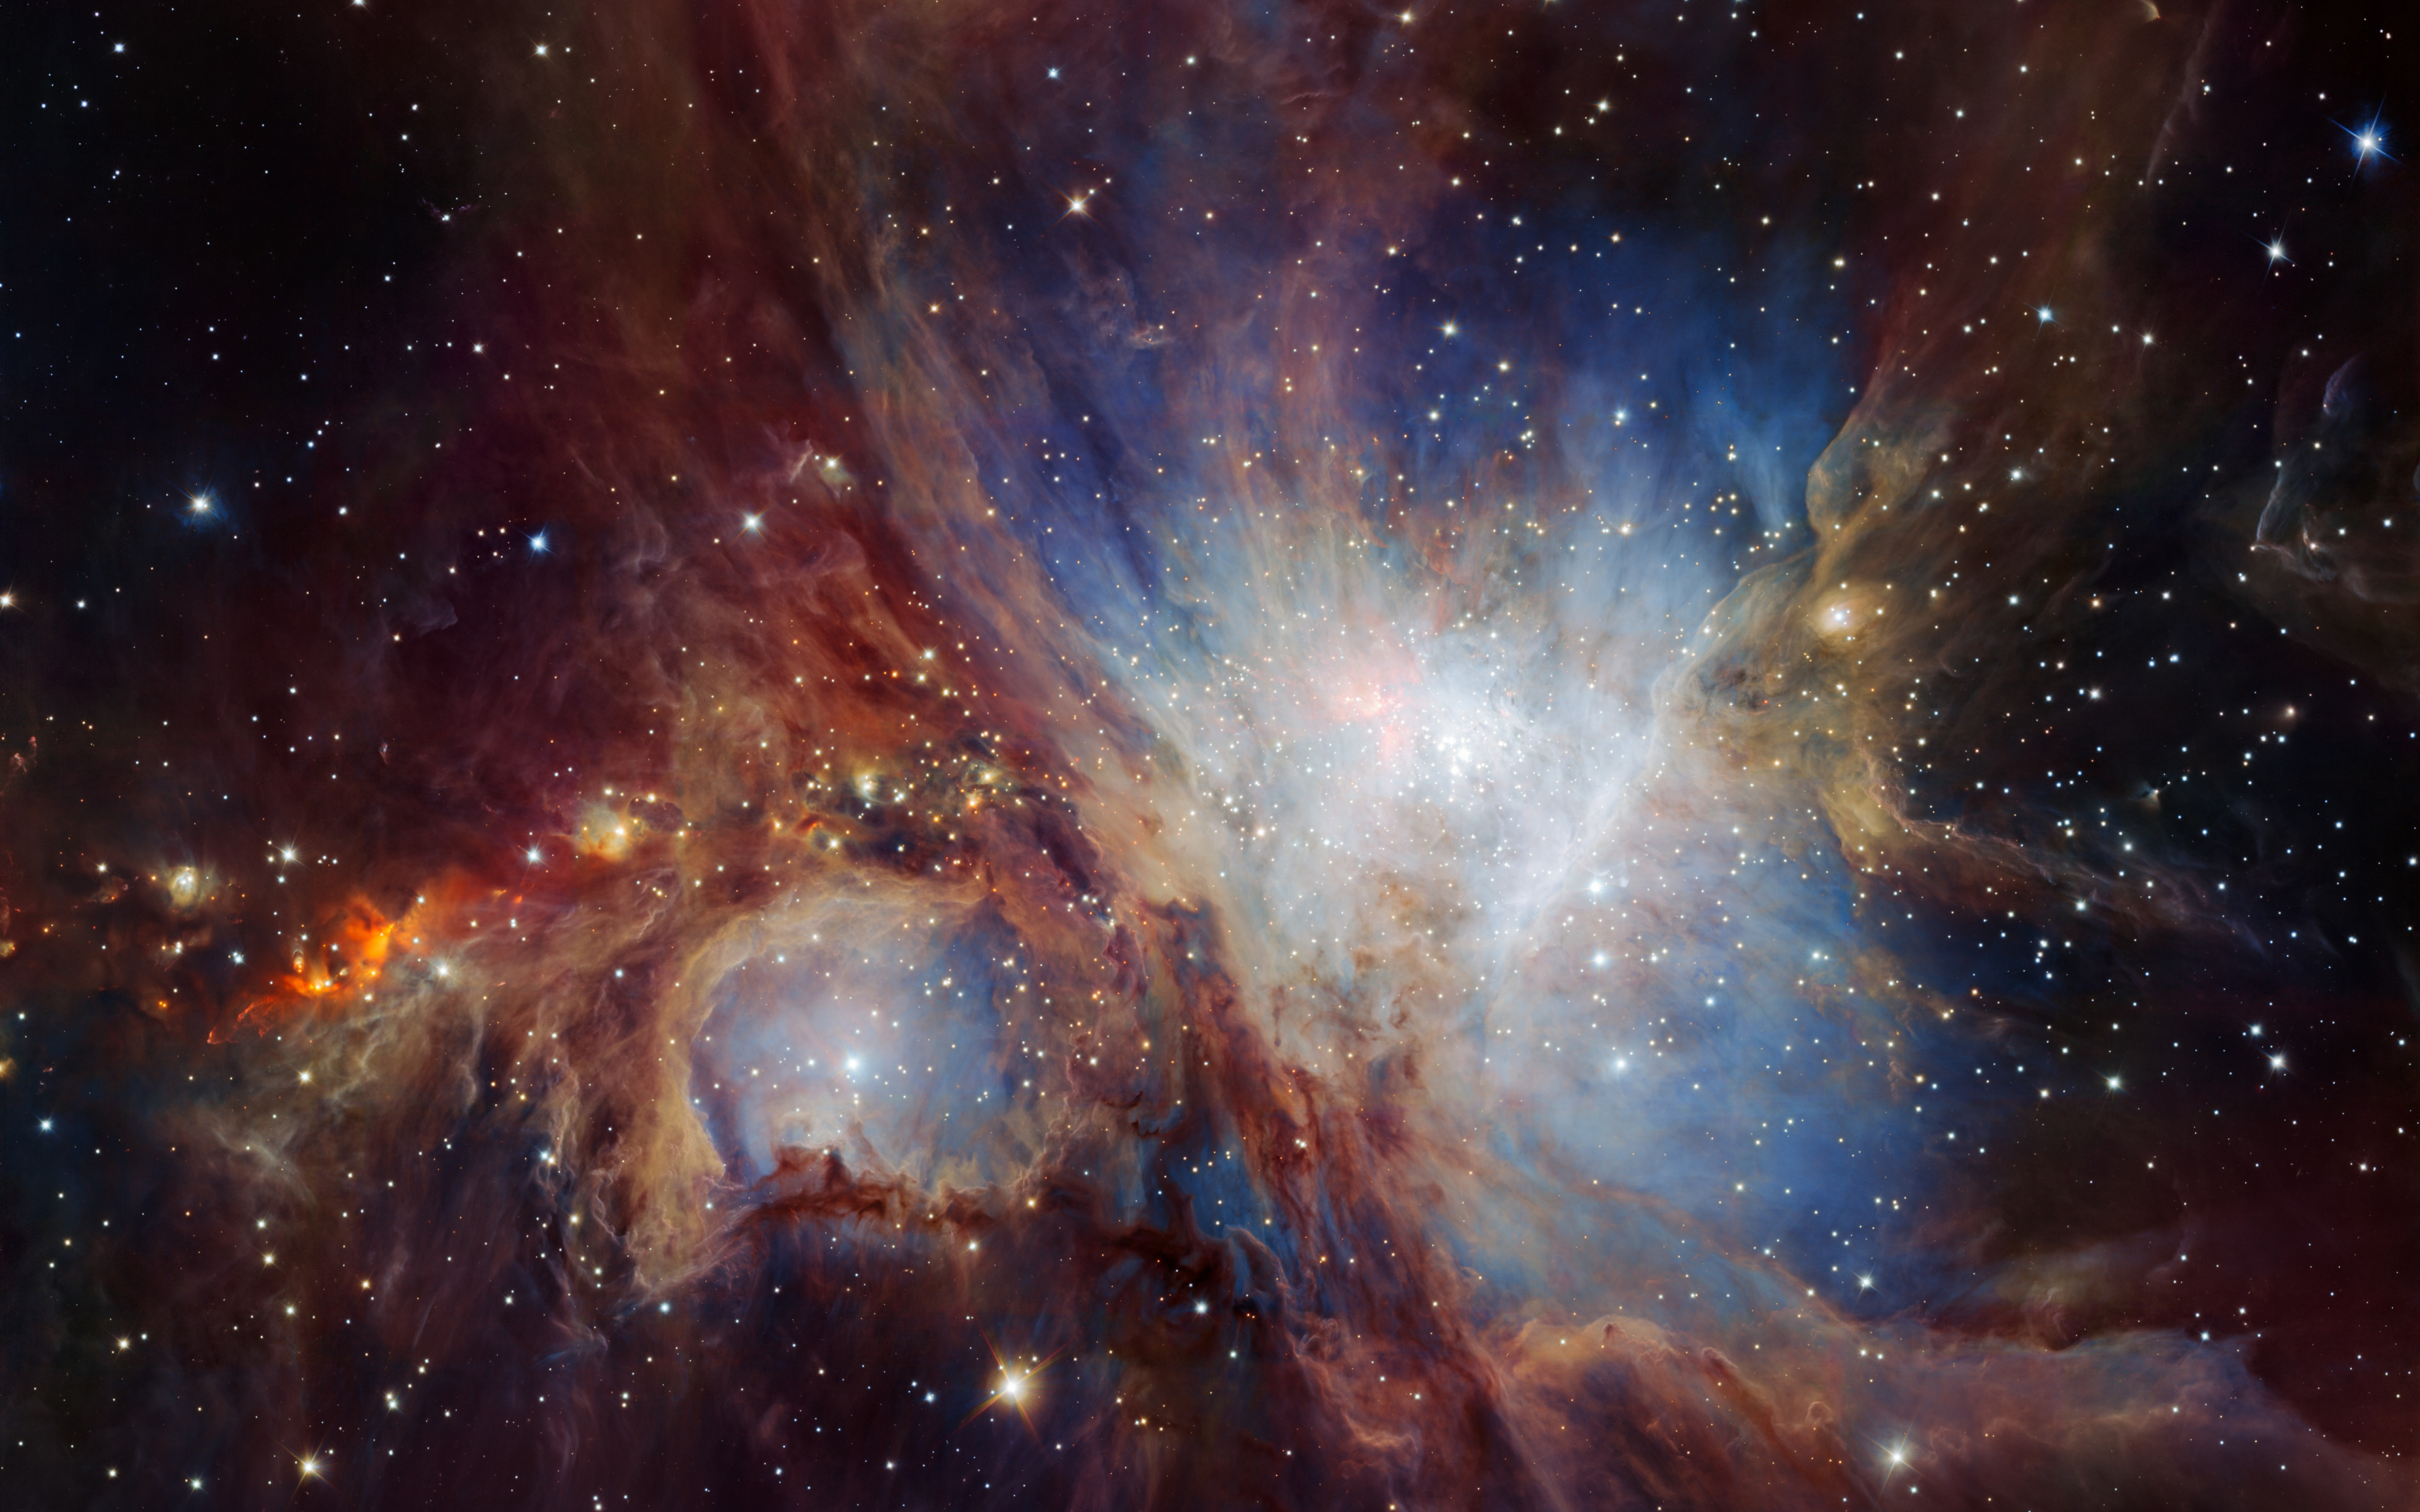 Infrared view of the Orion Nebula wallpaper 3840x2400